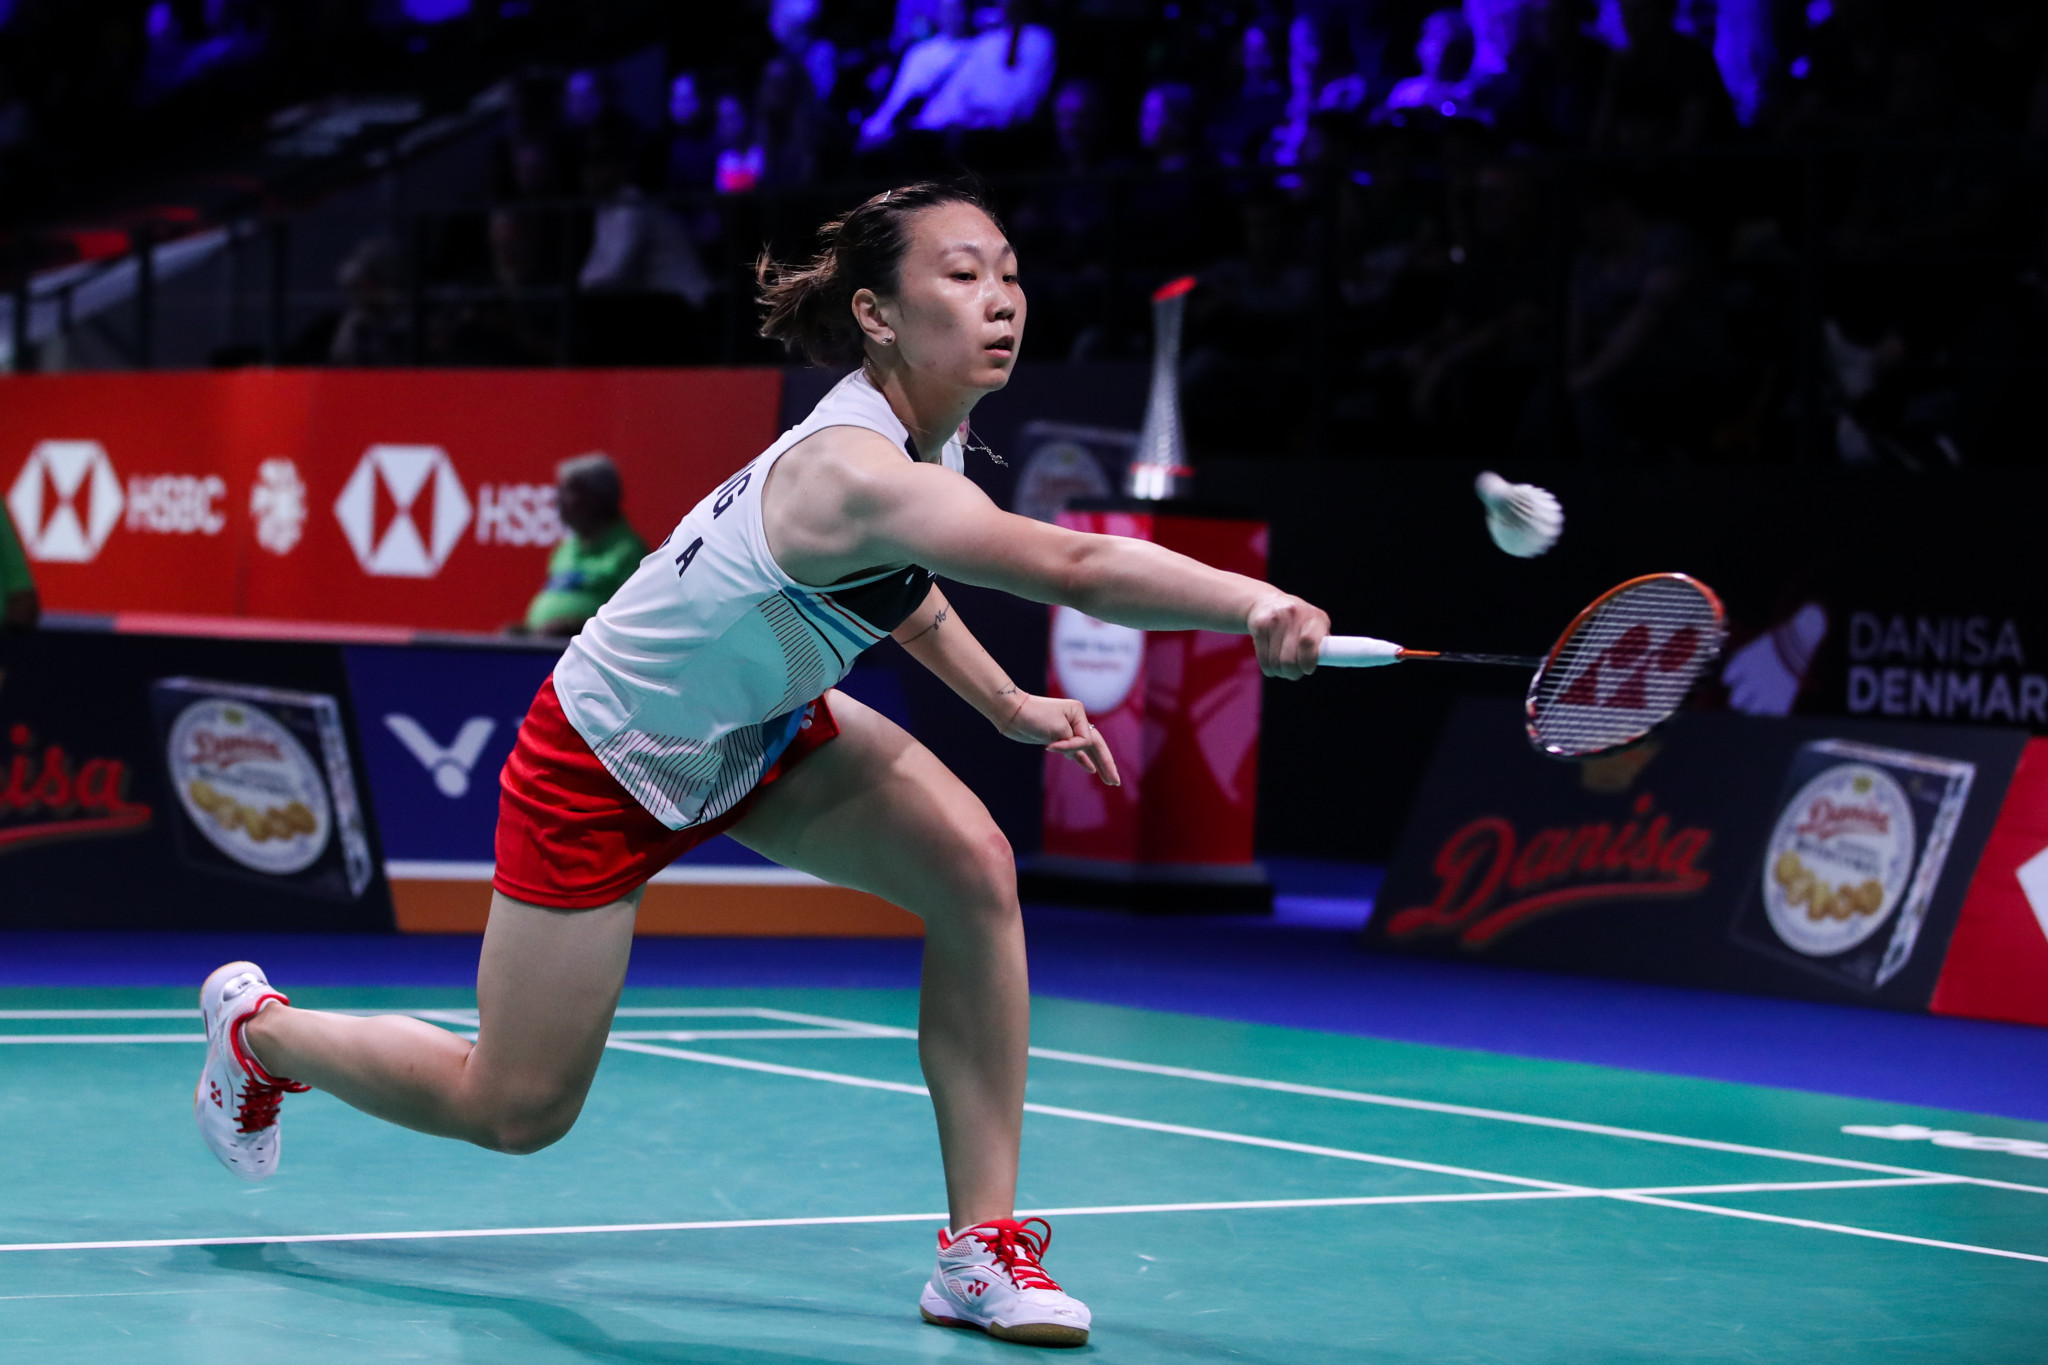 USA Badminton, the national governing body behind players such as Zhang Beiwen, could have its status revoked ©Getty Images